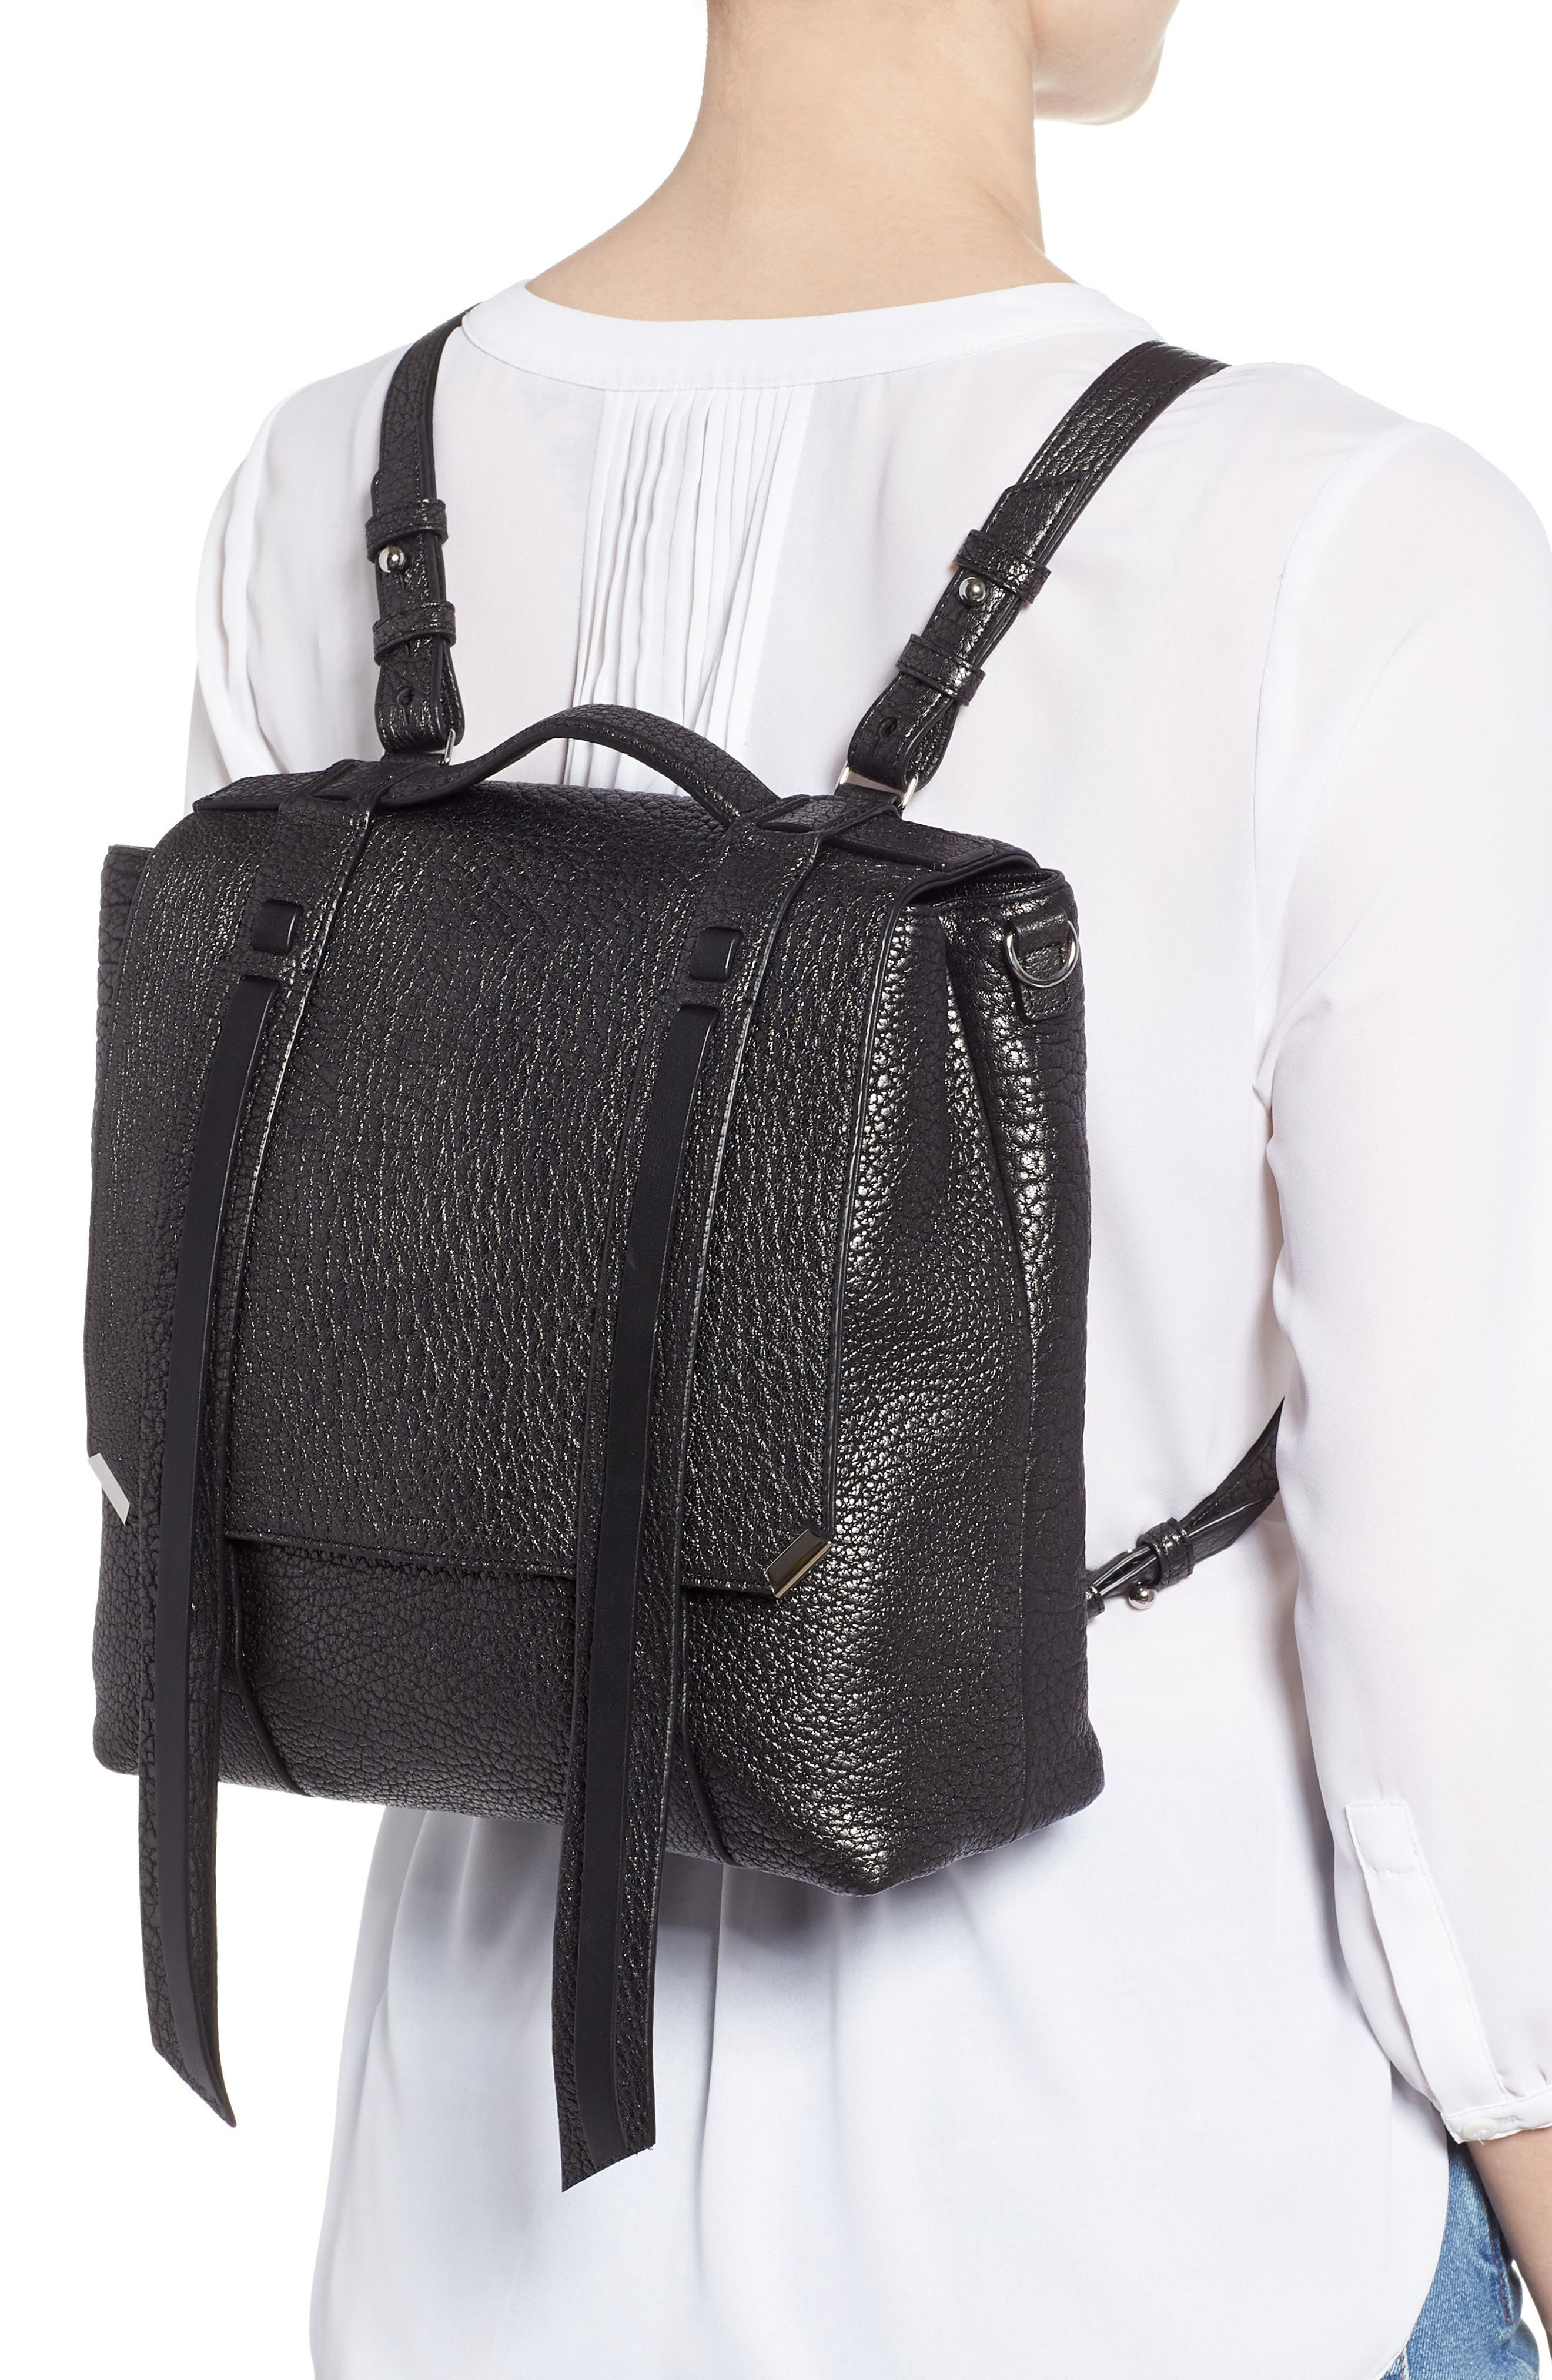 ALLSAINTS, Vincent Leather Backpack, Alternate thumbnail 2, color, 022